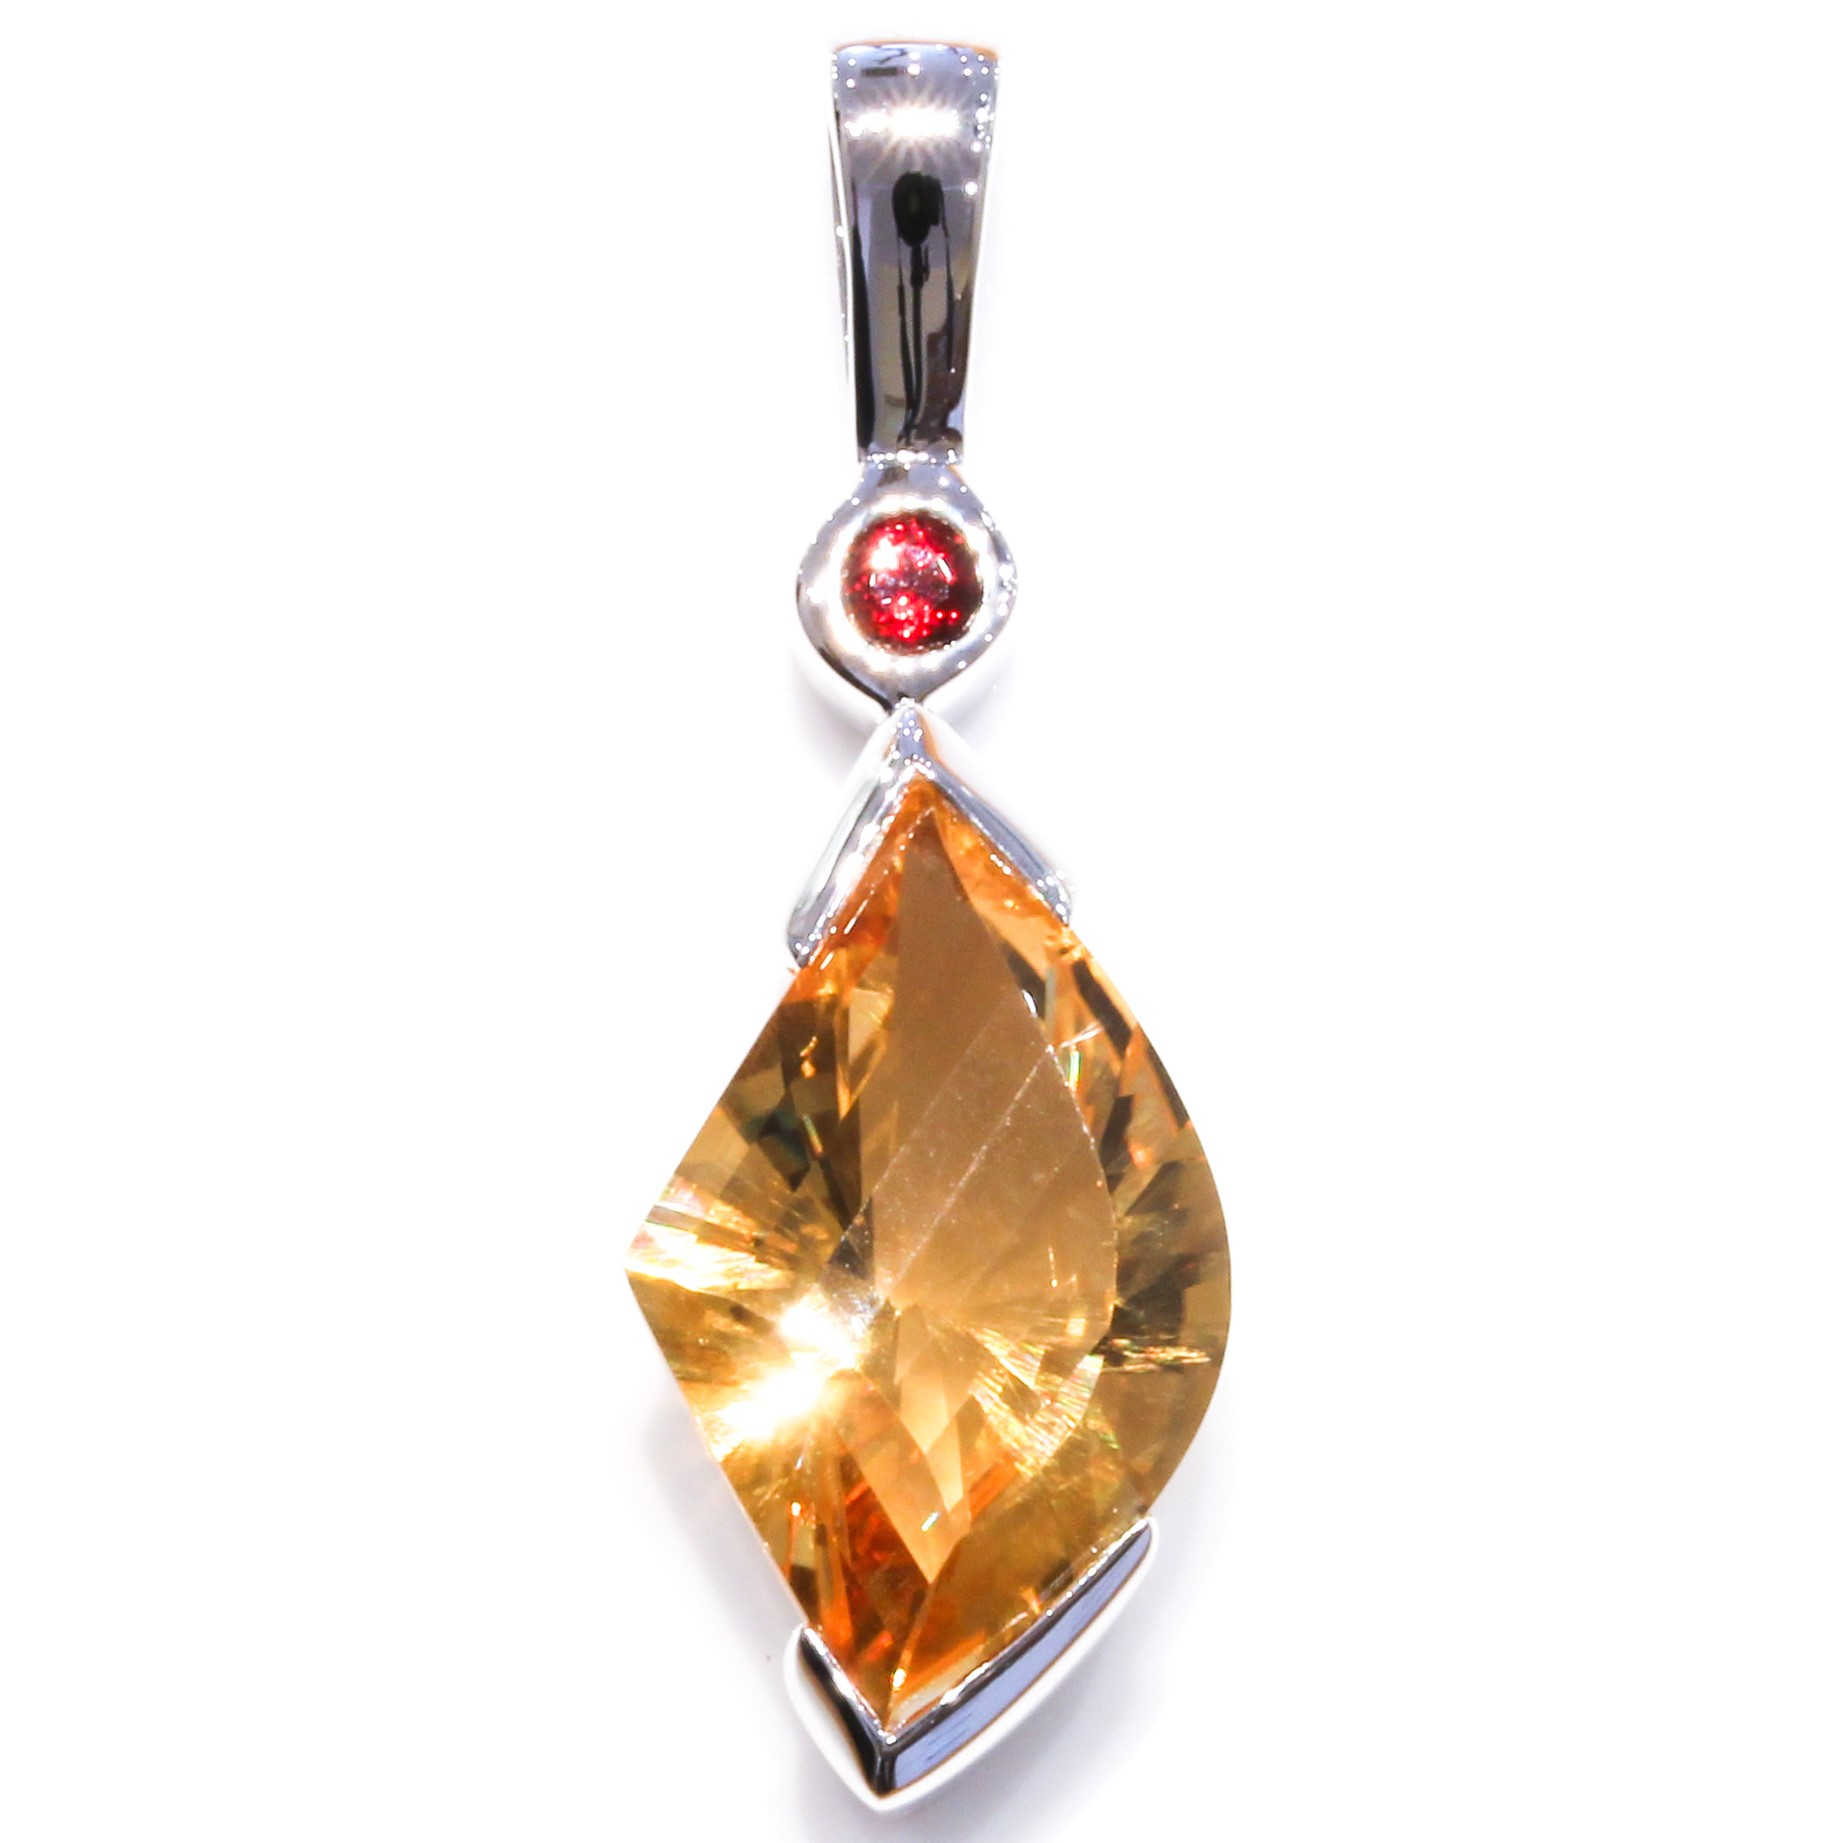 Garnet and Citrine Handmade Pendant